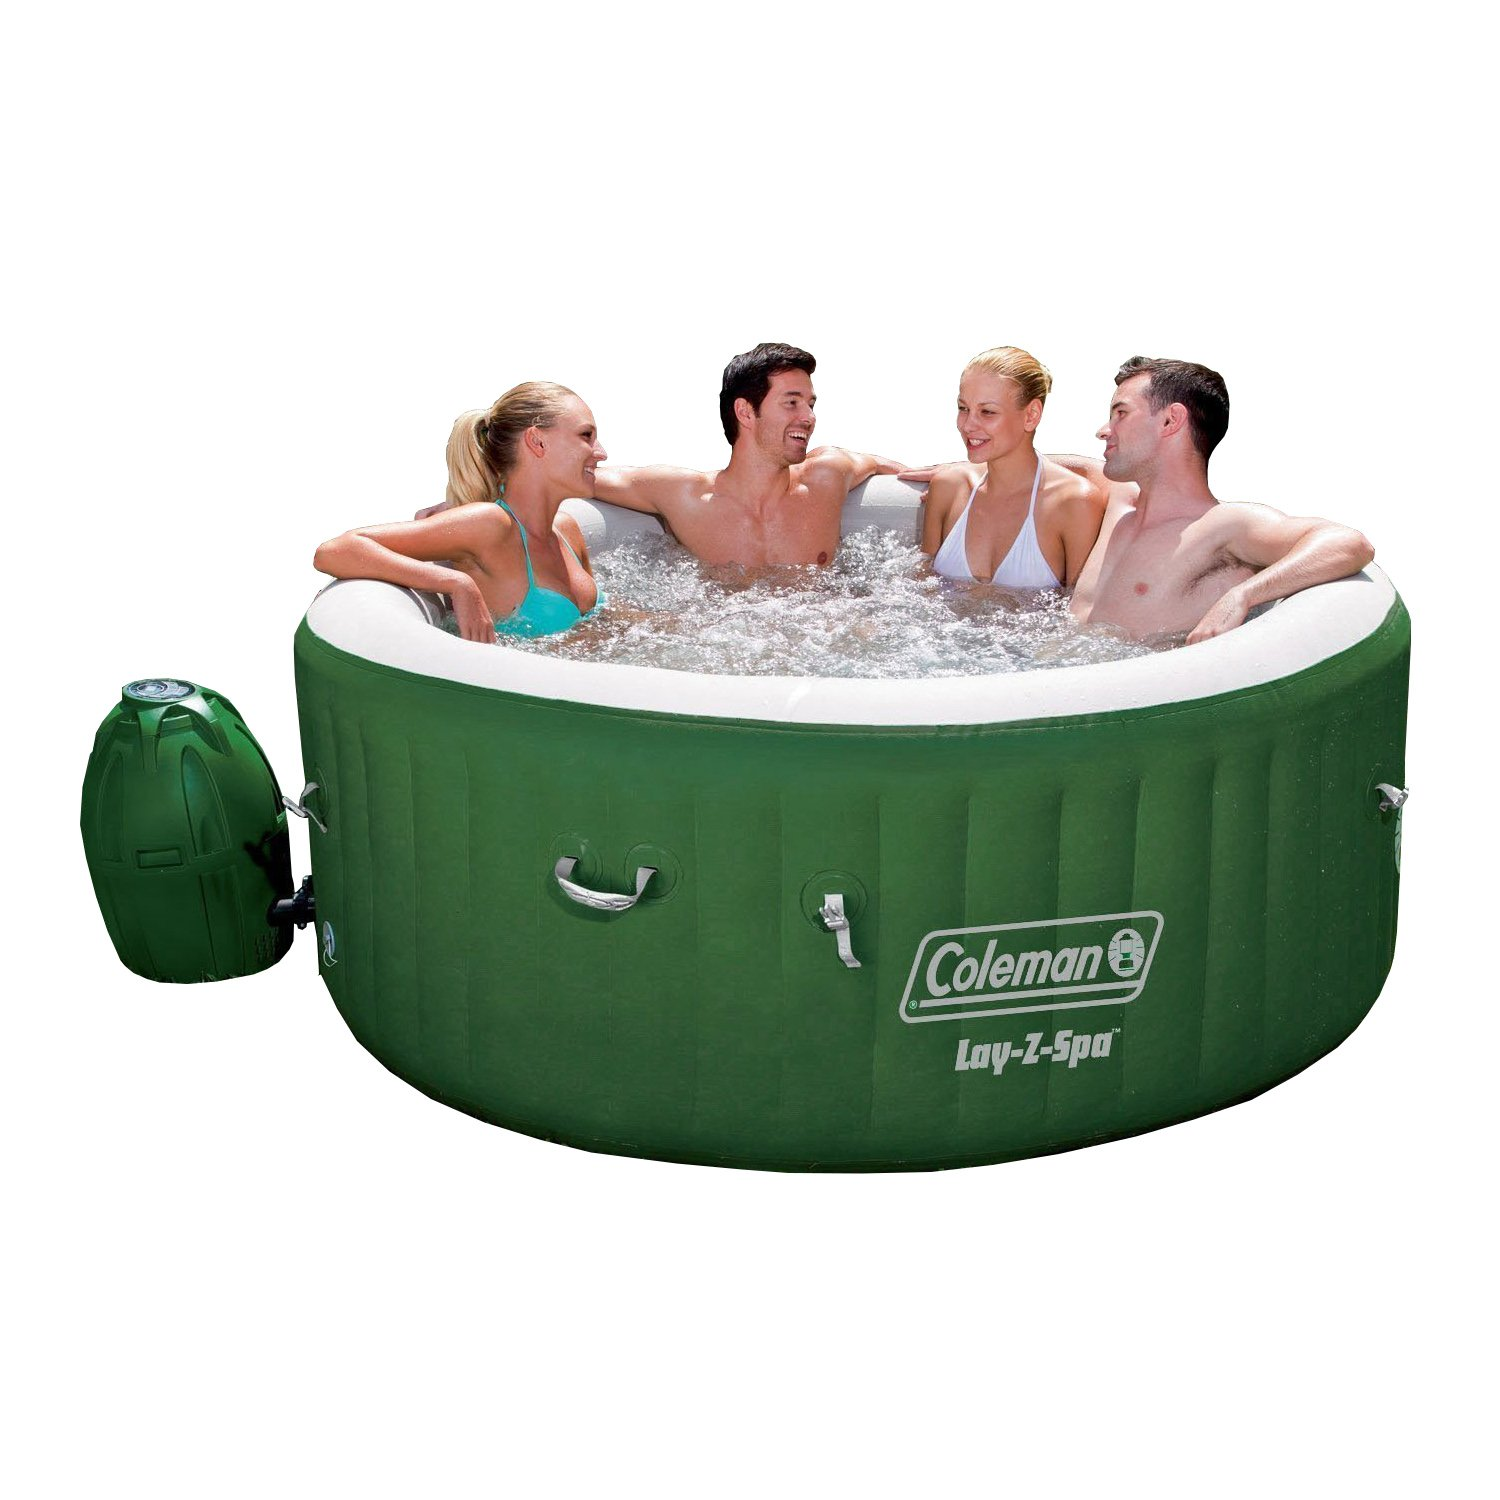 Amazon.com : Coleman Lay Z Spa Inflatable Hot Tub : Patio, Lawn U0026 Garden